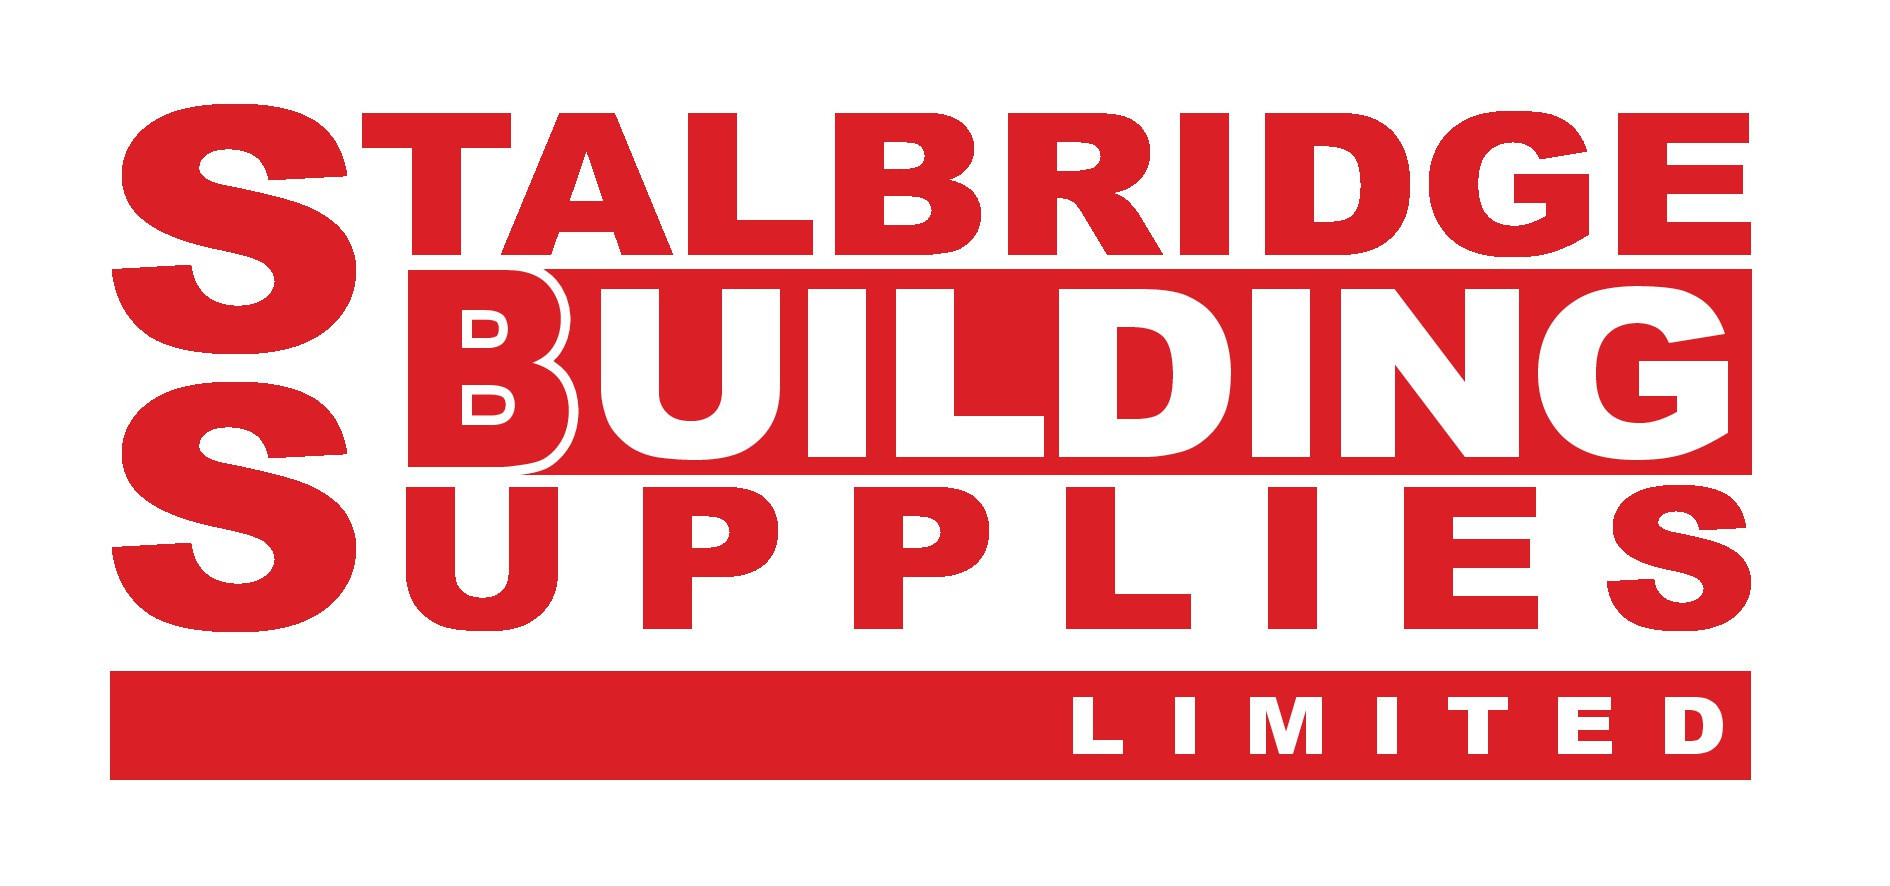 Stalbridge Building Supplies Ltd